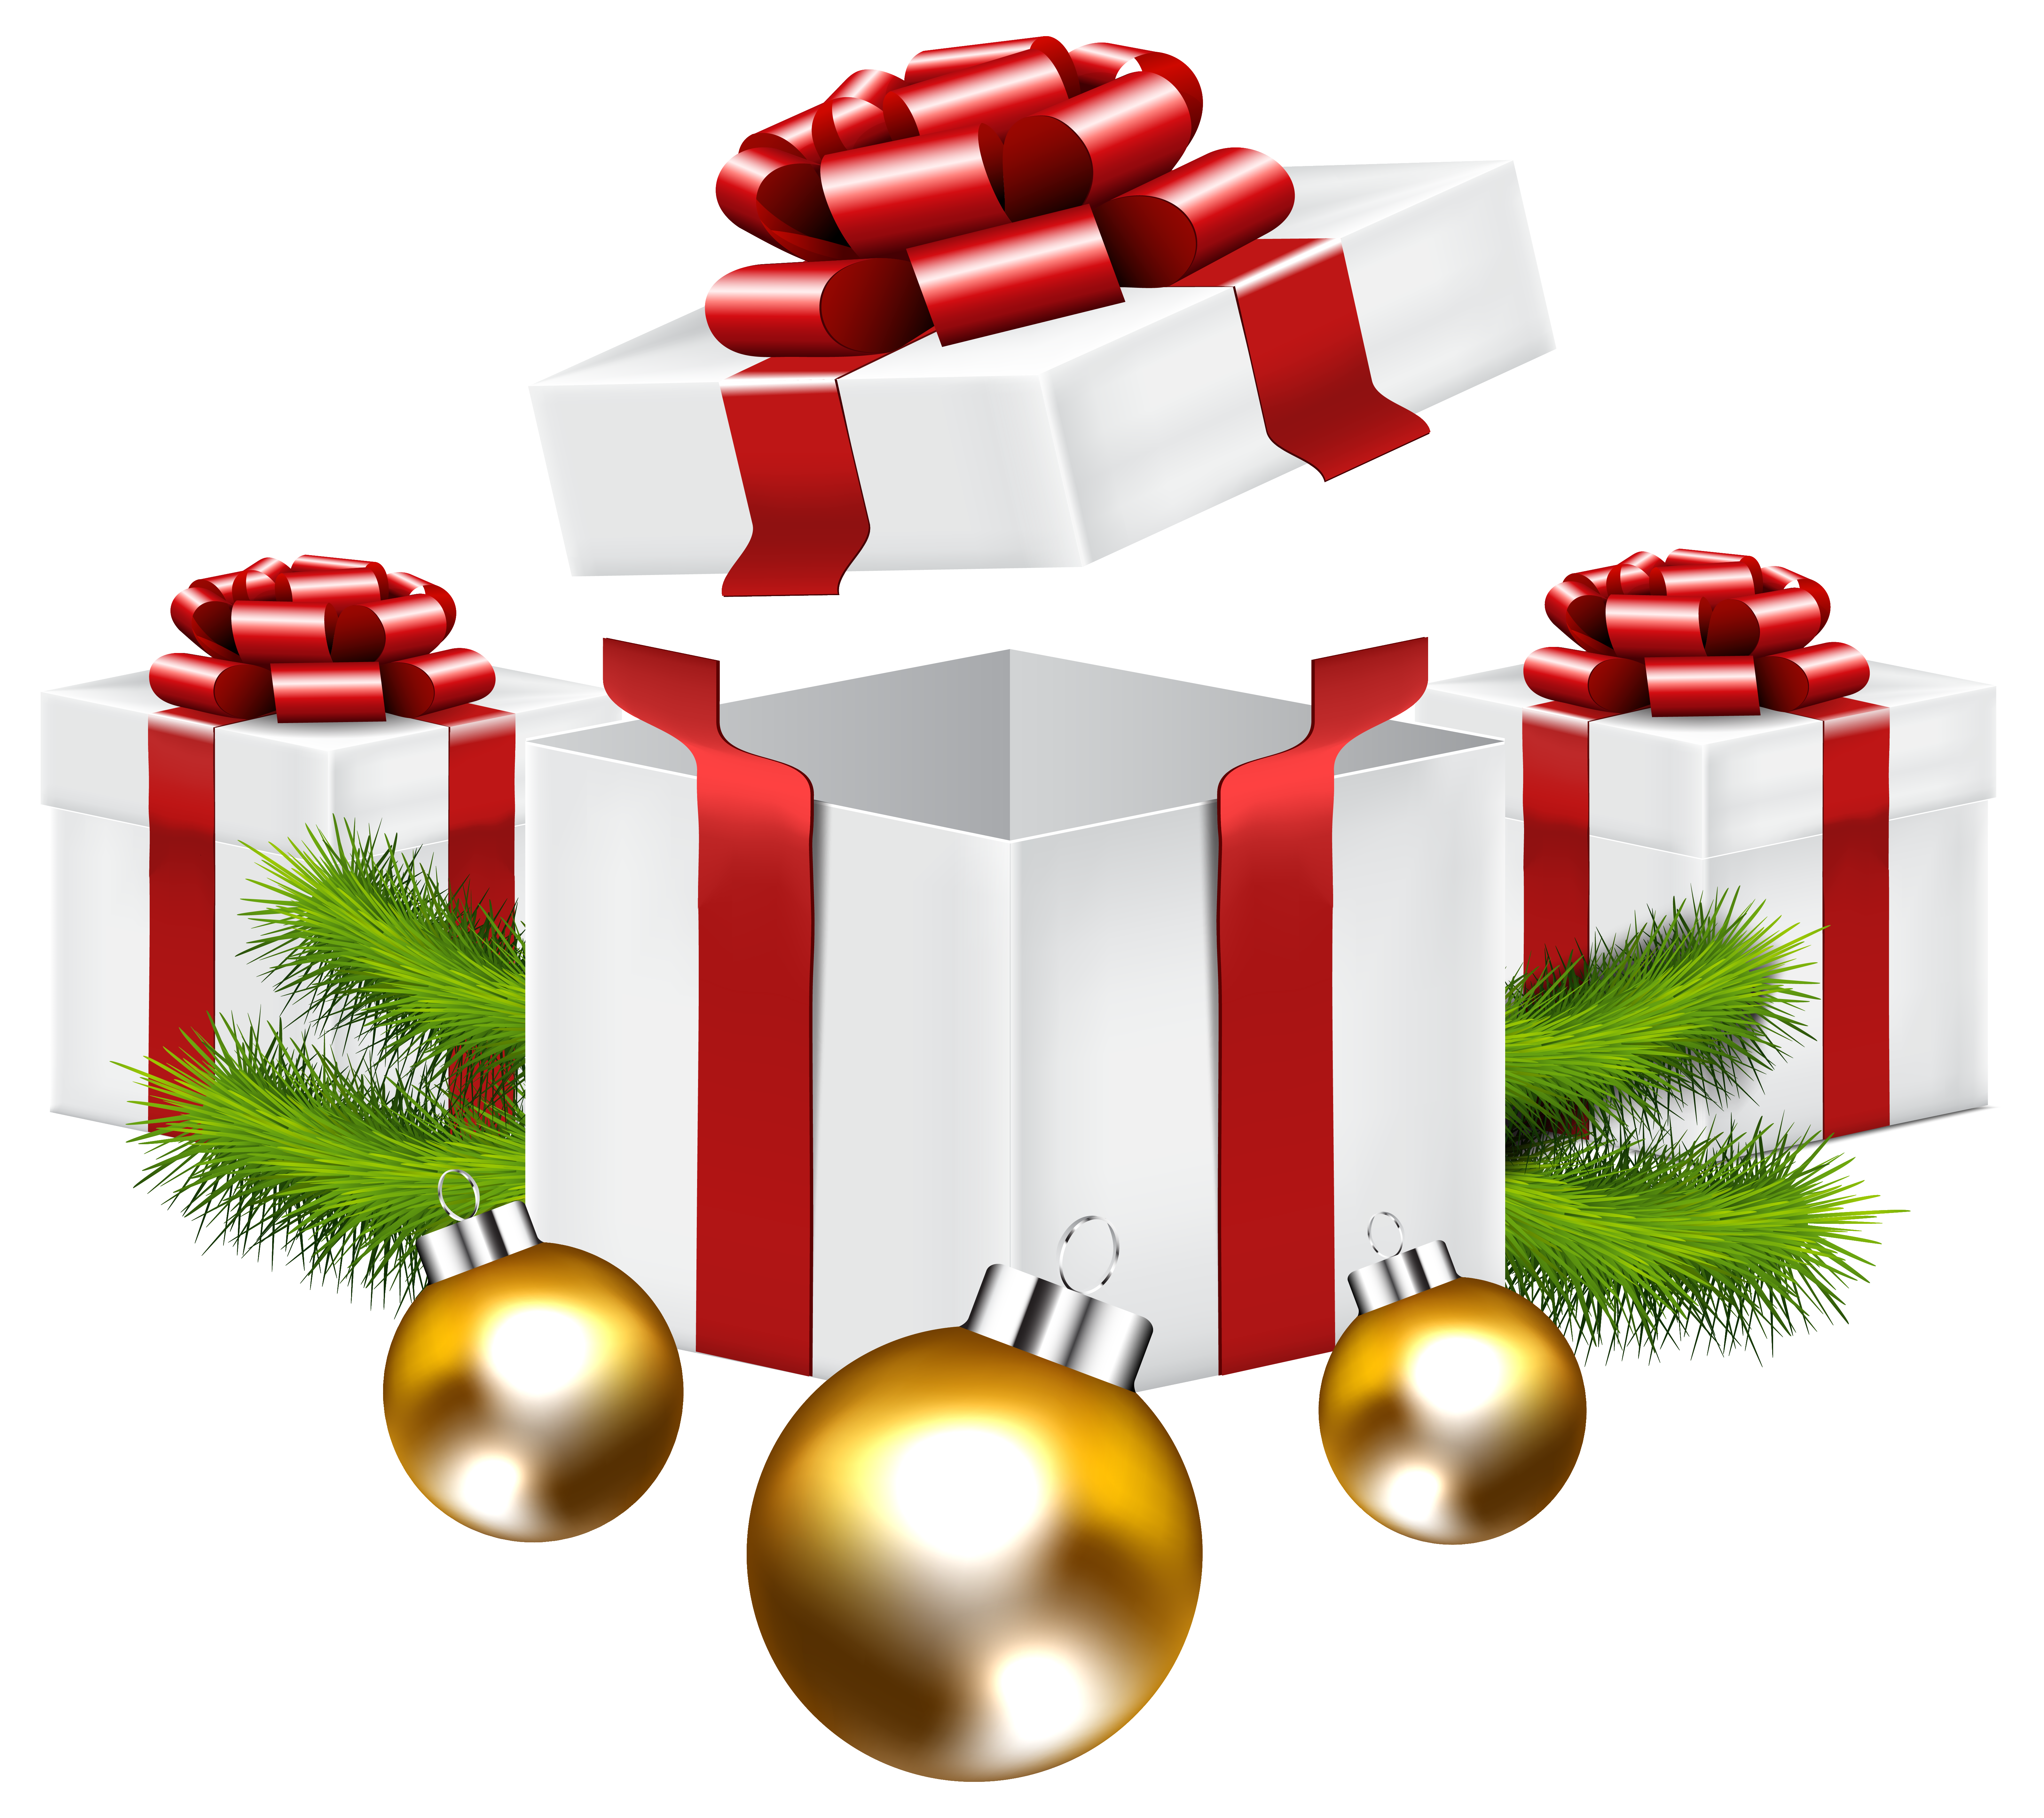 Christmas Gifts PNG Clip Art Image.